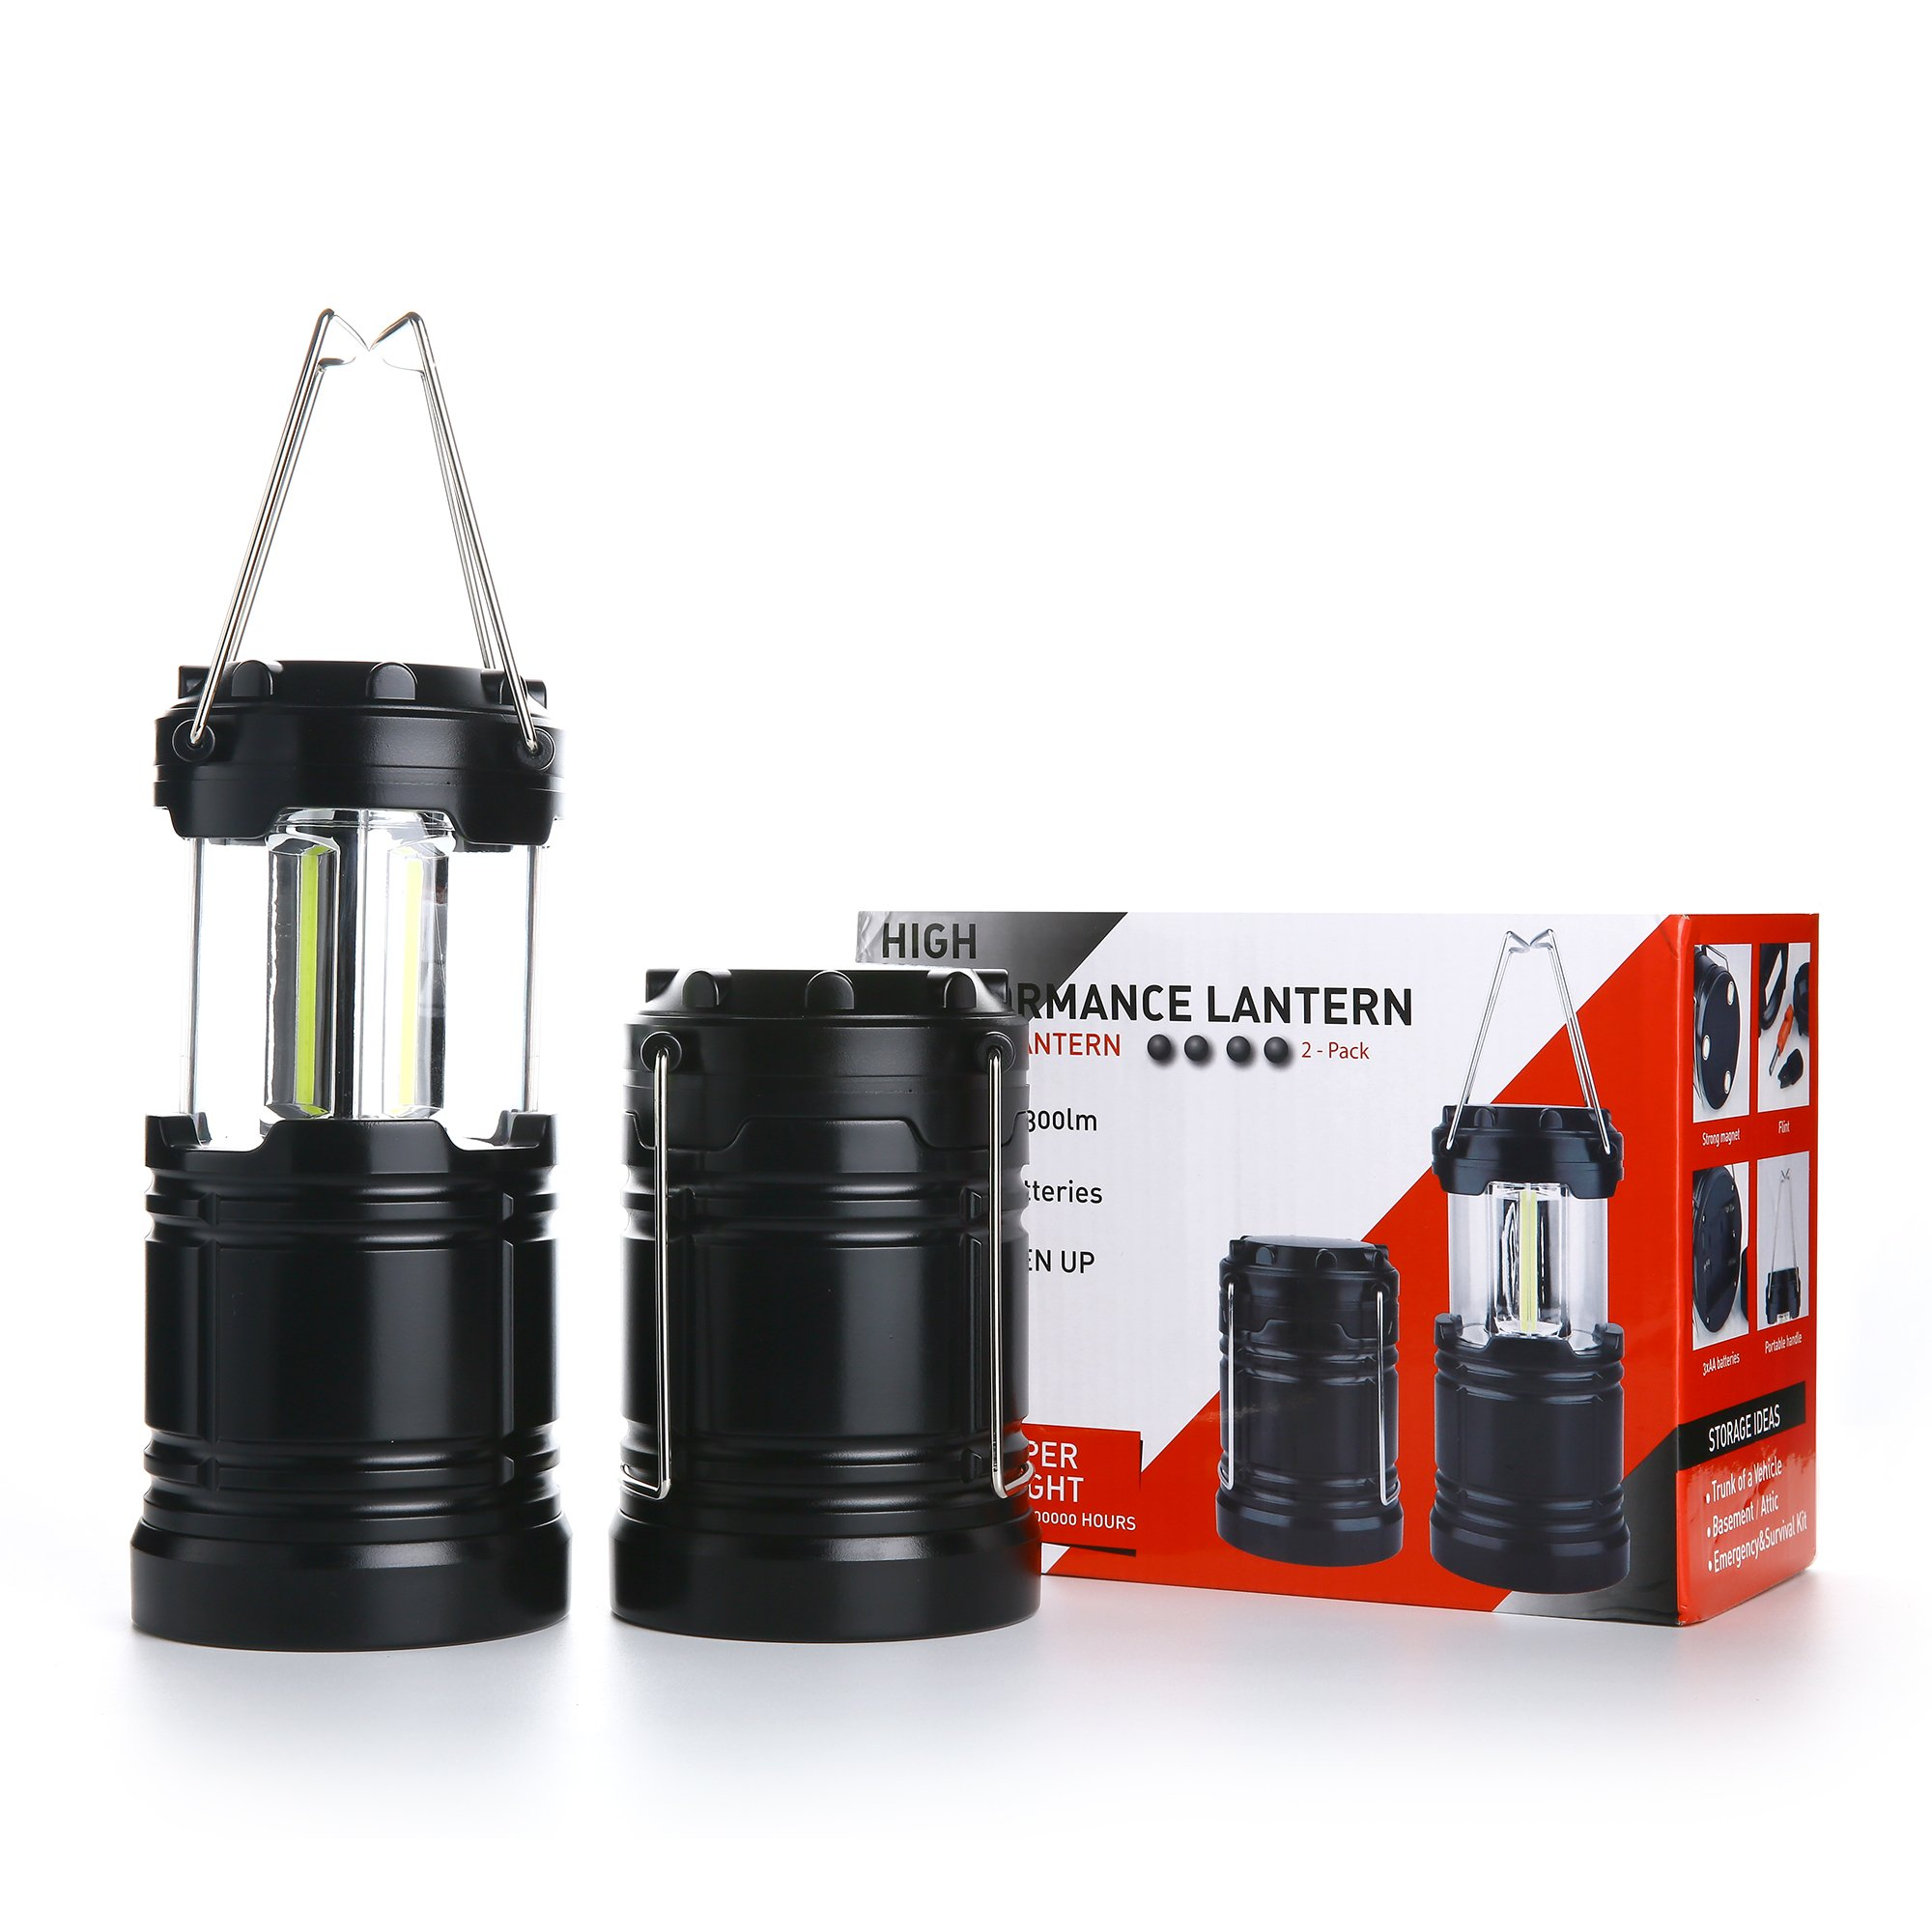 2 Pcs Military Grade Camping Lantern Tactical Lantern COB LED with Magnetic Base for Hurricanes, Emergencies, Storms, Outages by Hisonde